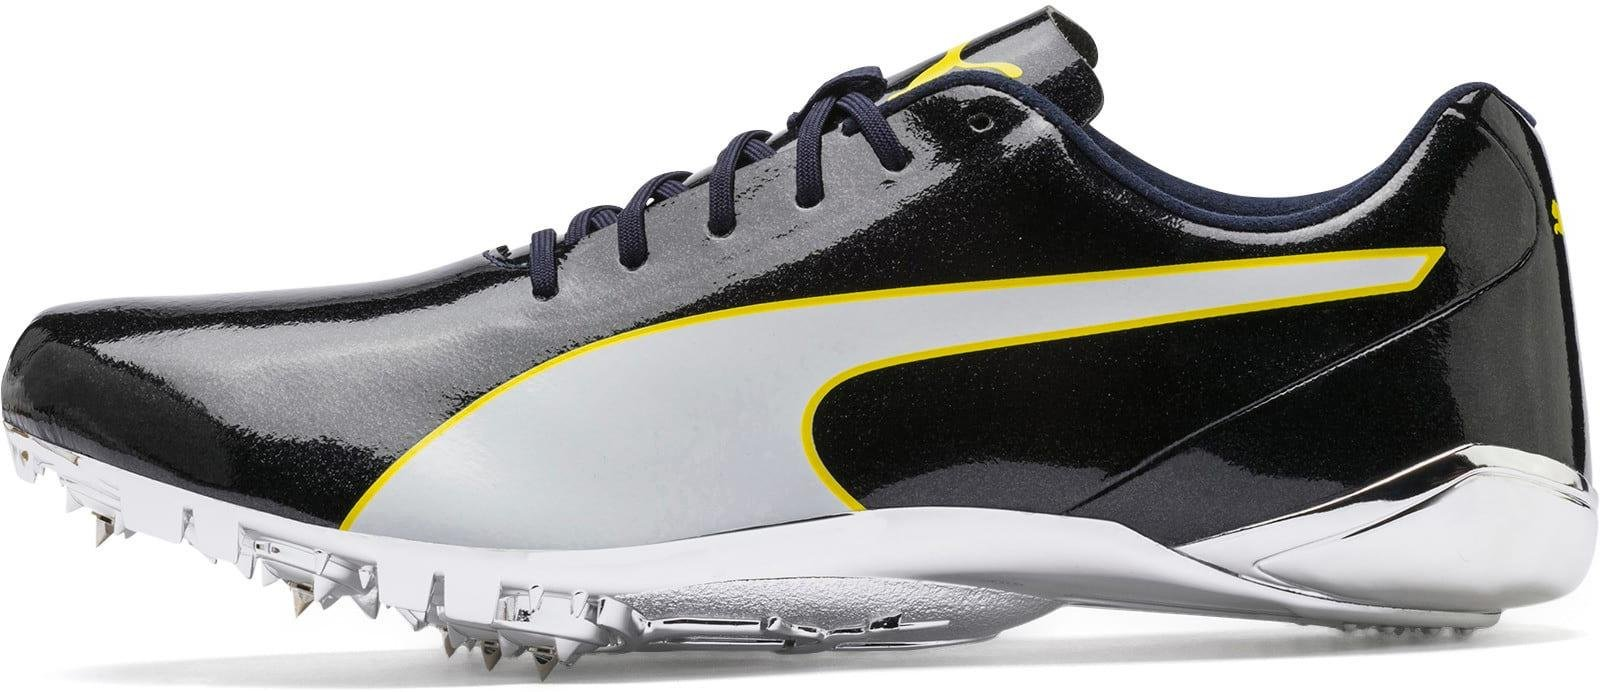 Track shoes/Spikes Puma evoSPEED Electric 7